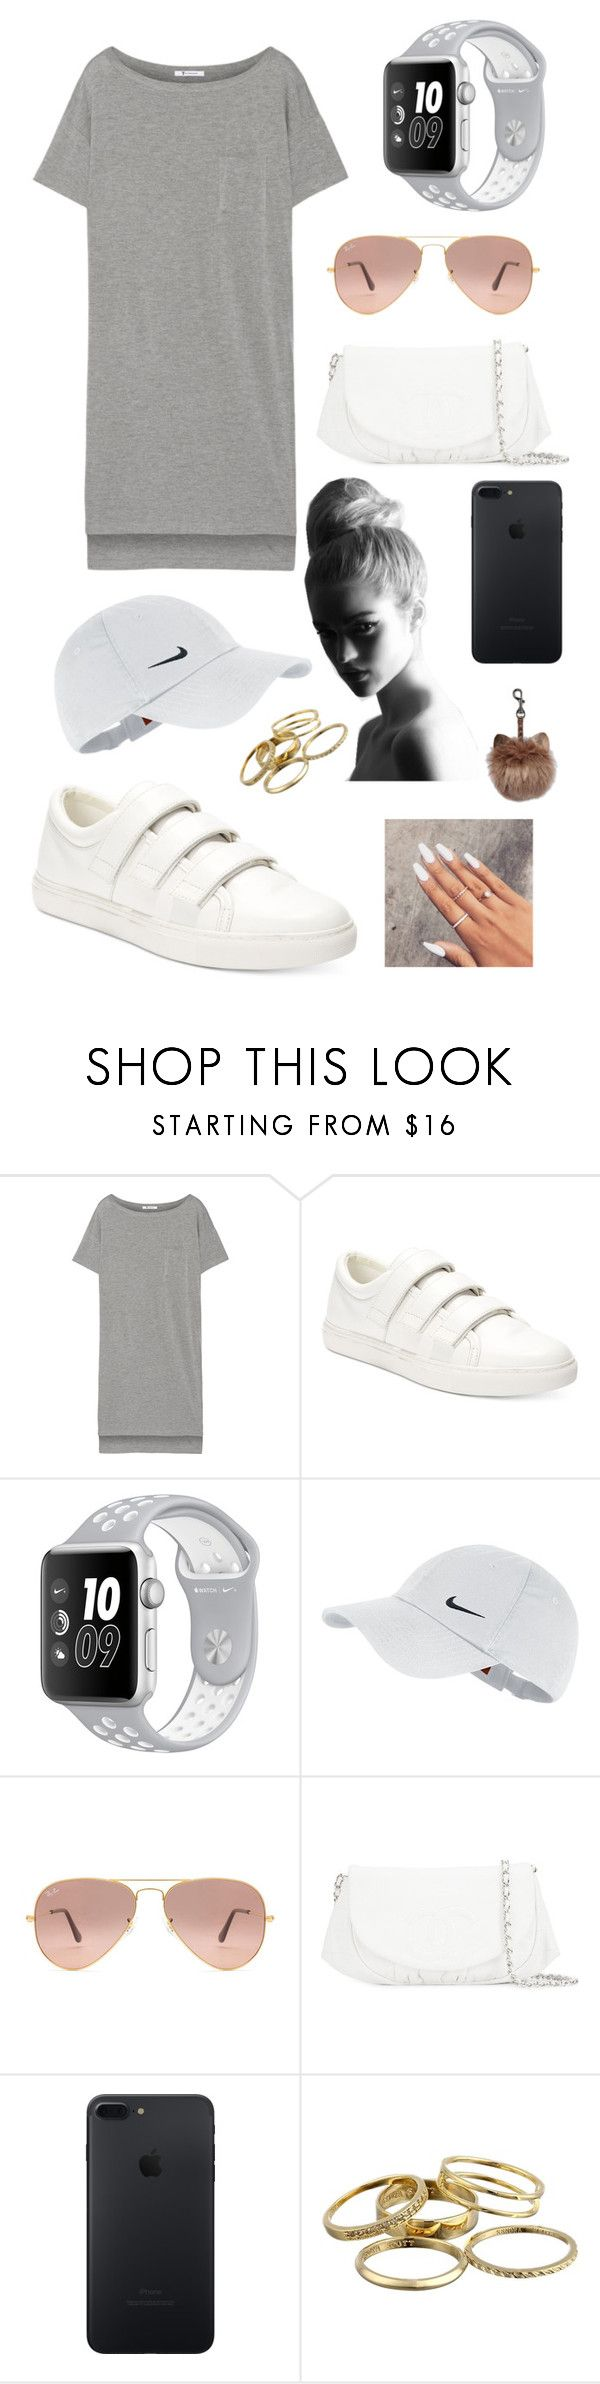 """Untitled #99"" by annaschluter on Polyvore featuring T By Alexander Wang, Kenneth Cole, NIKE, Ray-Ban, Chanel and Kendra Scott"